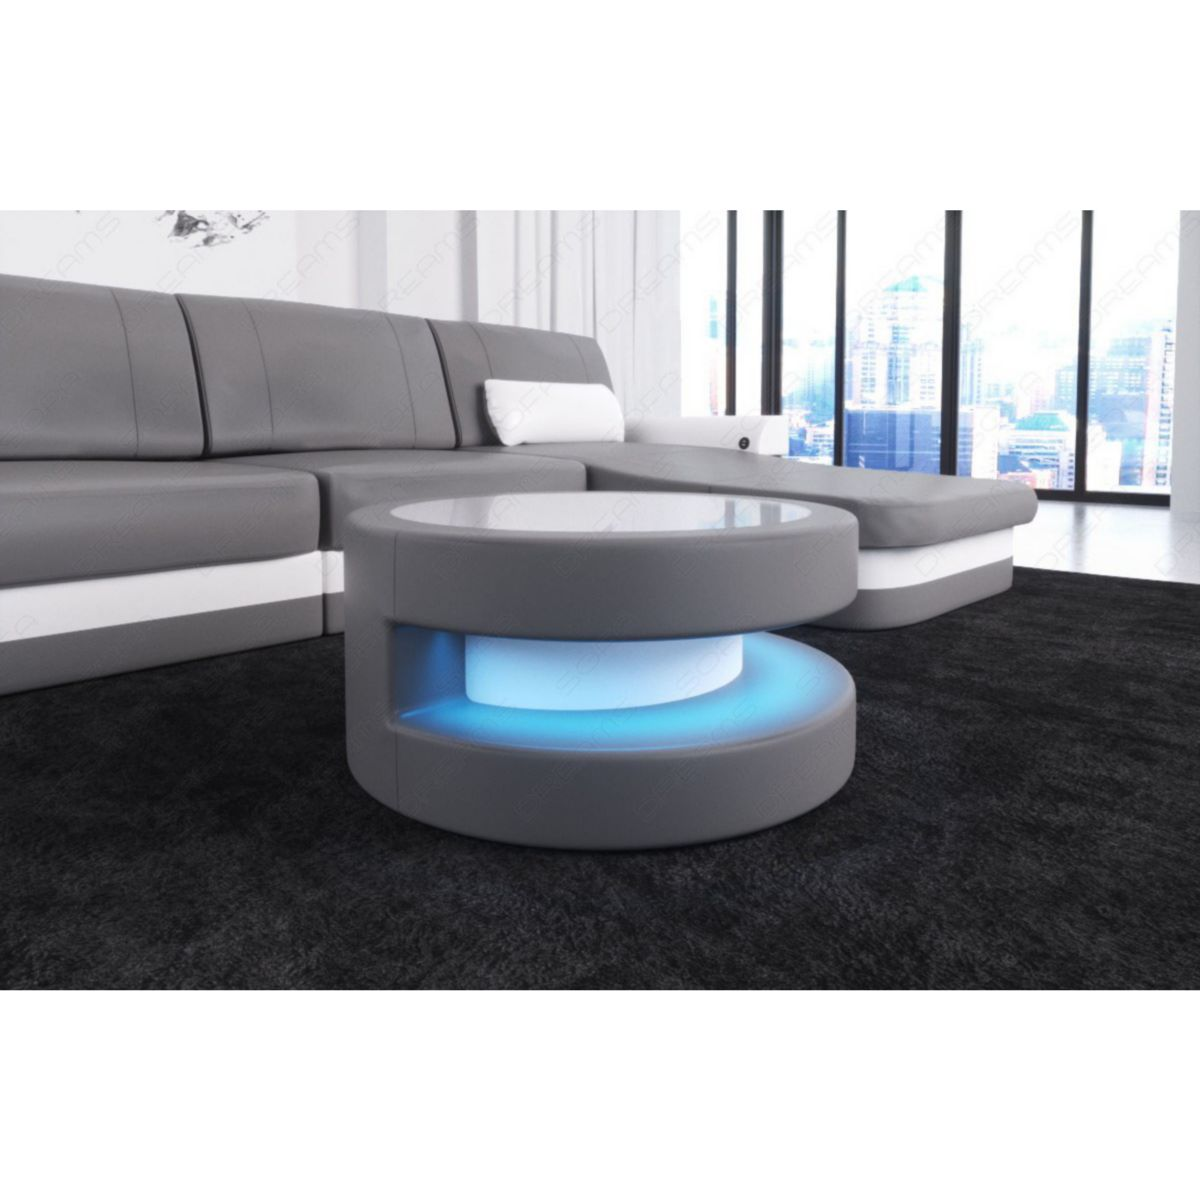 Sofa Dreams Couchtisch Modena mit LED